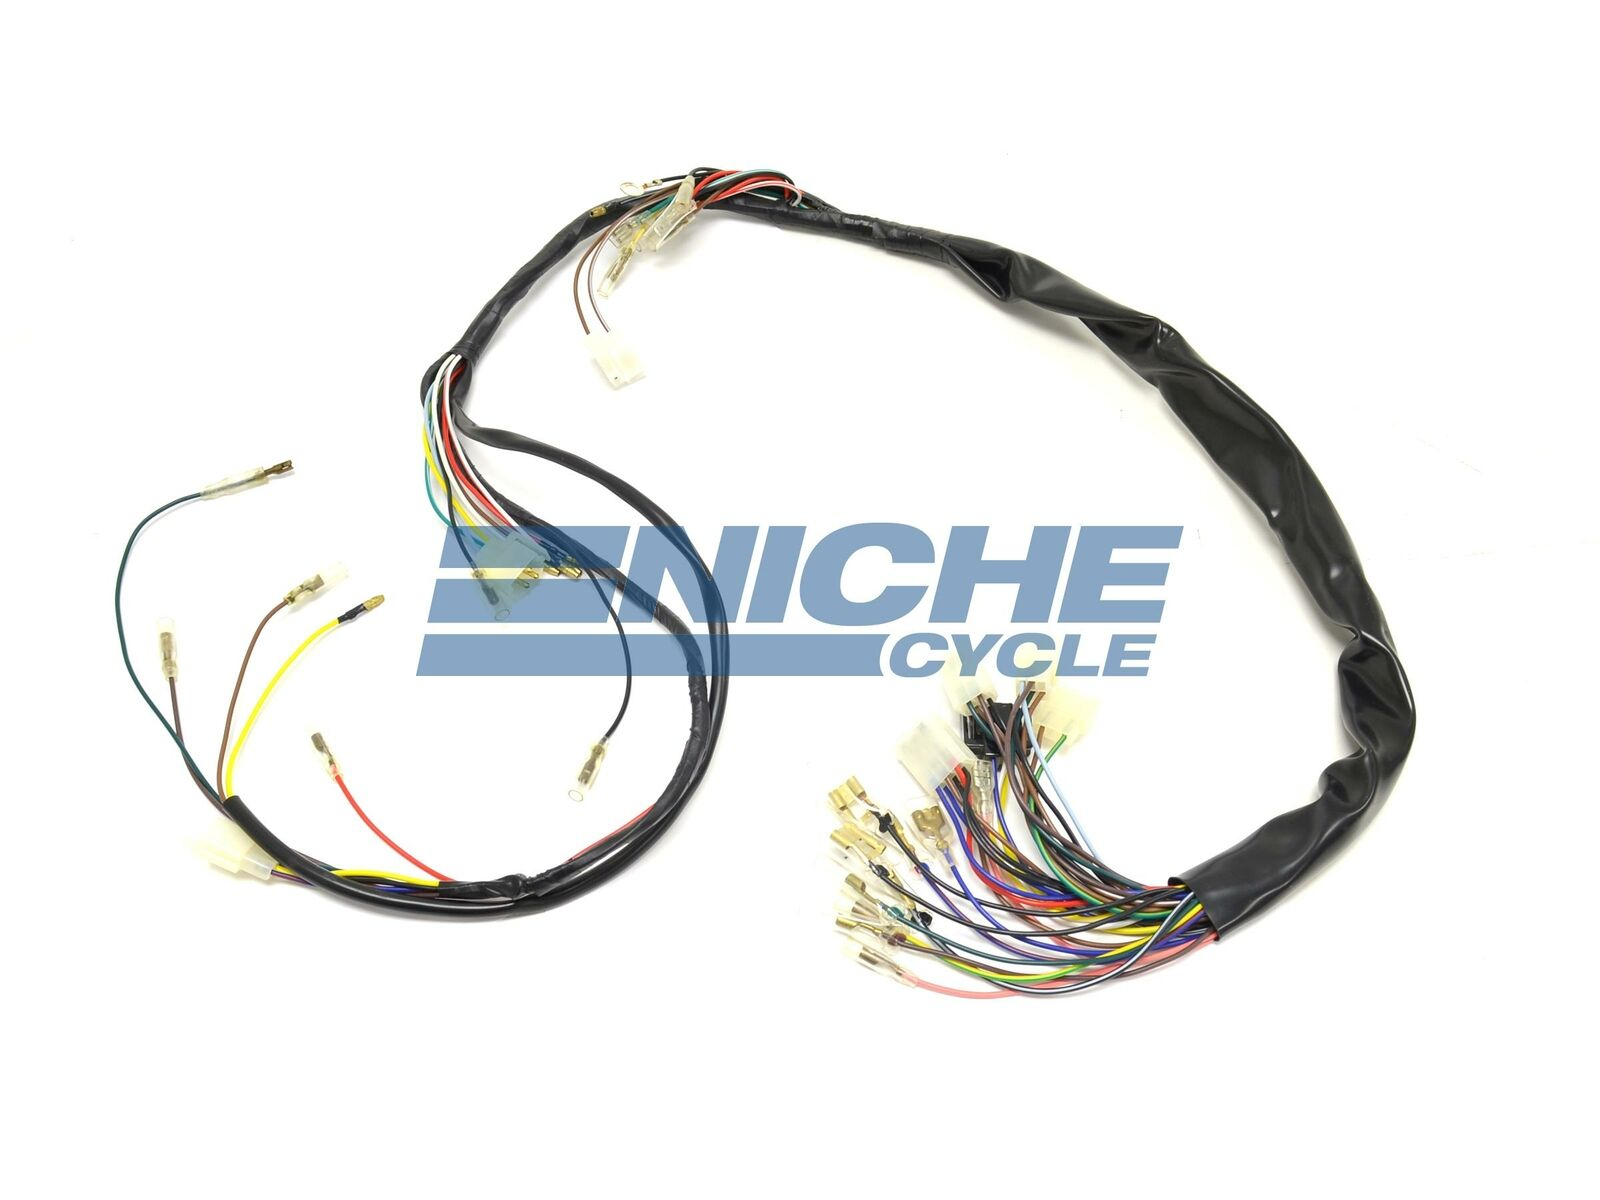 Yamaha Xt250 80 81 Main Wire Harness Wiring Loom 3y1 82590 50 00 Scout 1 Of See More